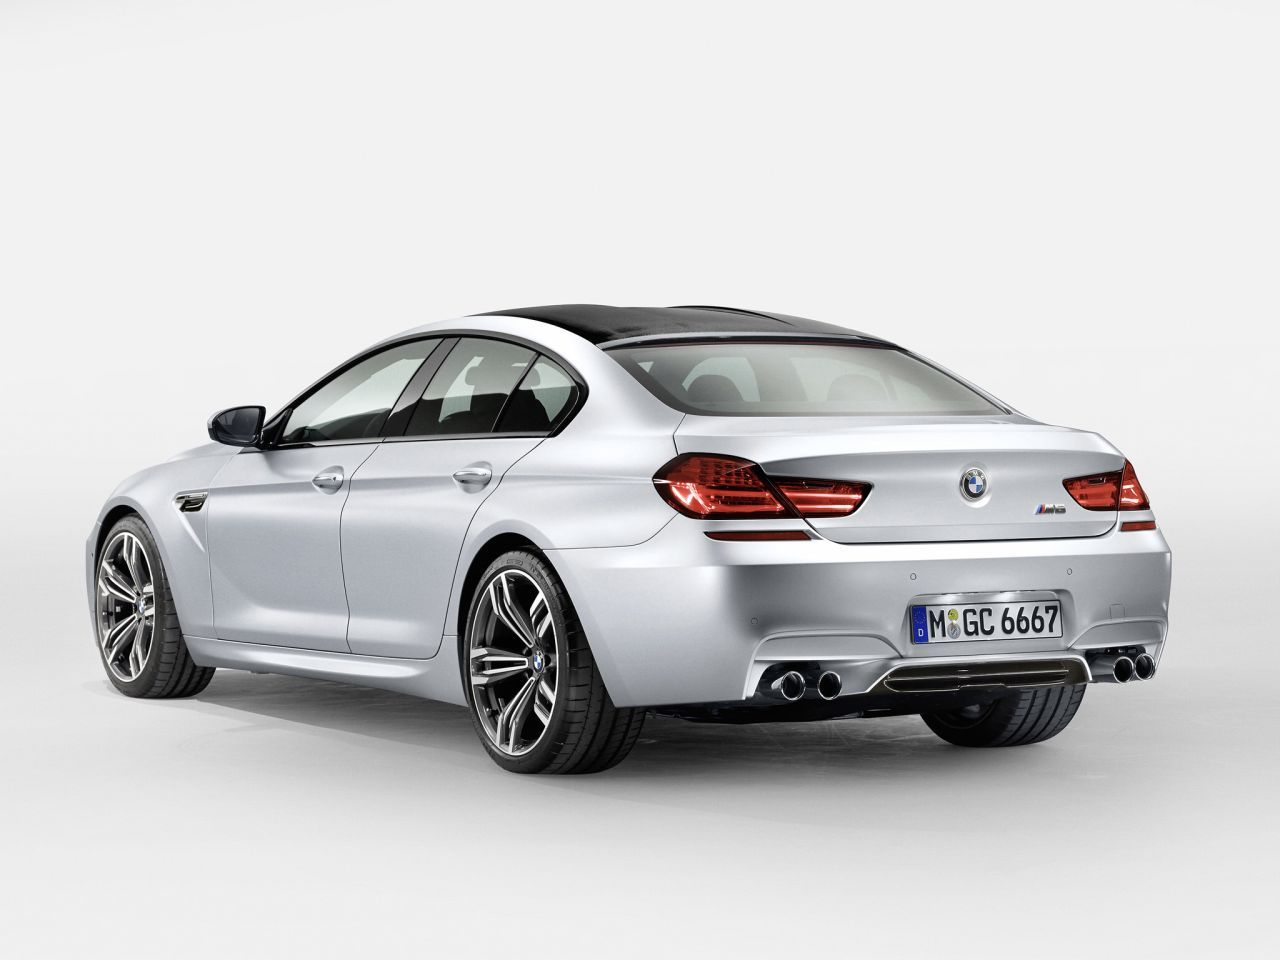 M6 4 Door Version With Images Bmw M6 Gran Coupe Bmw 6 Series